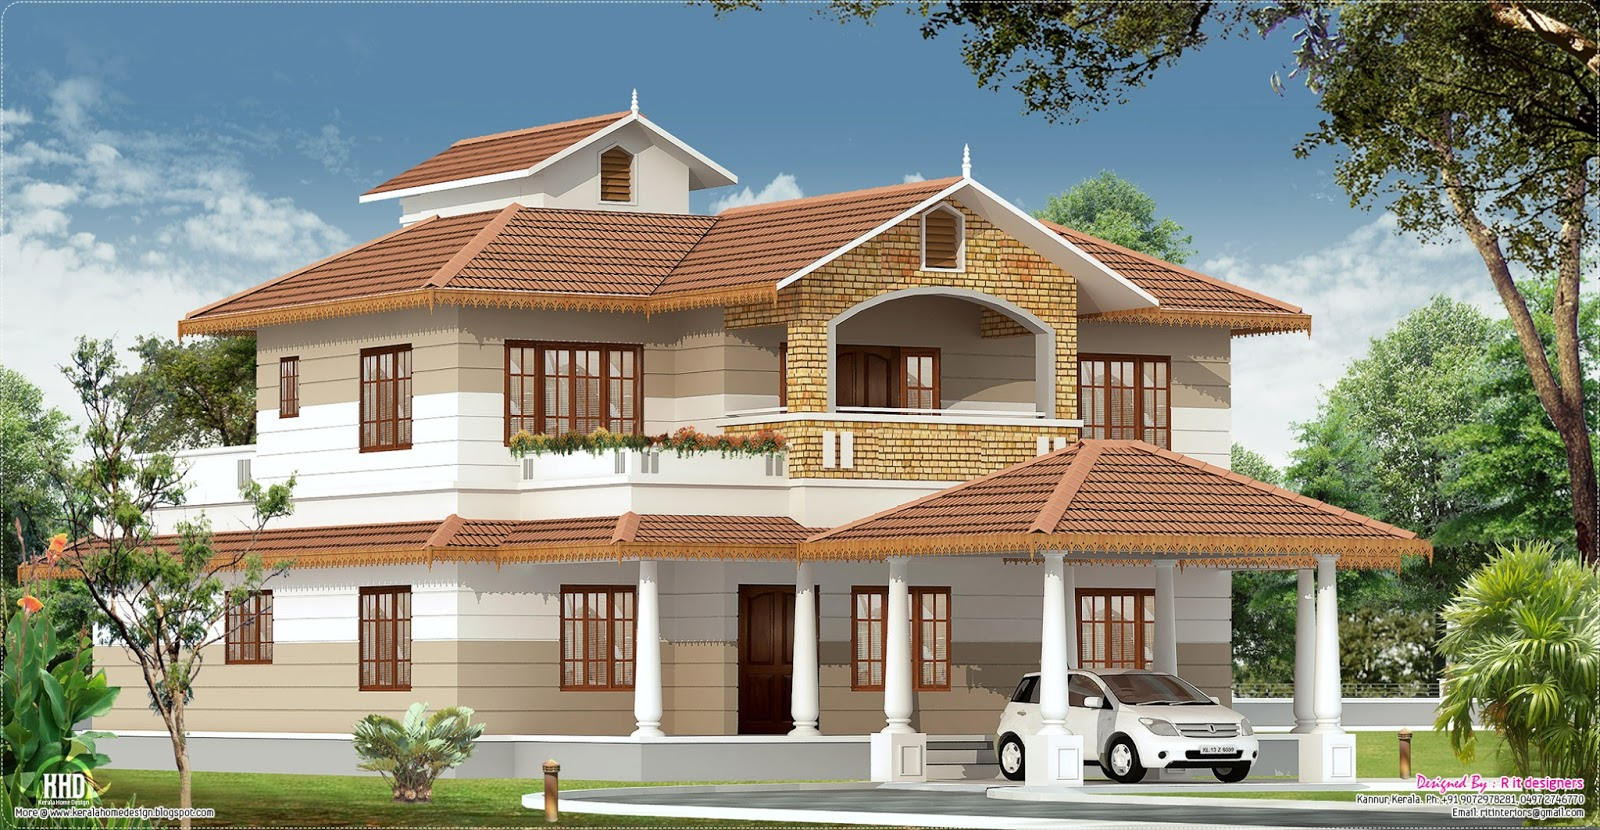 2700 kerala home with interior designs kerala for Home designs com